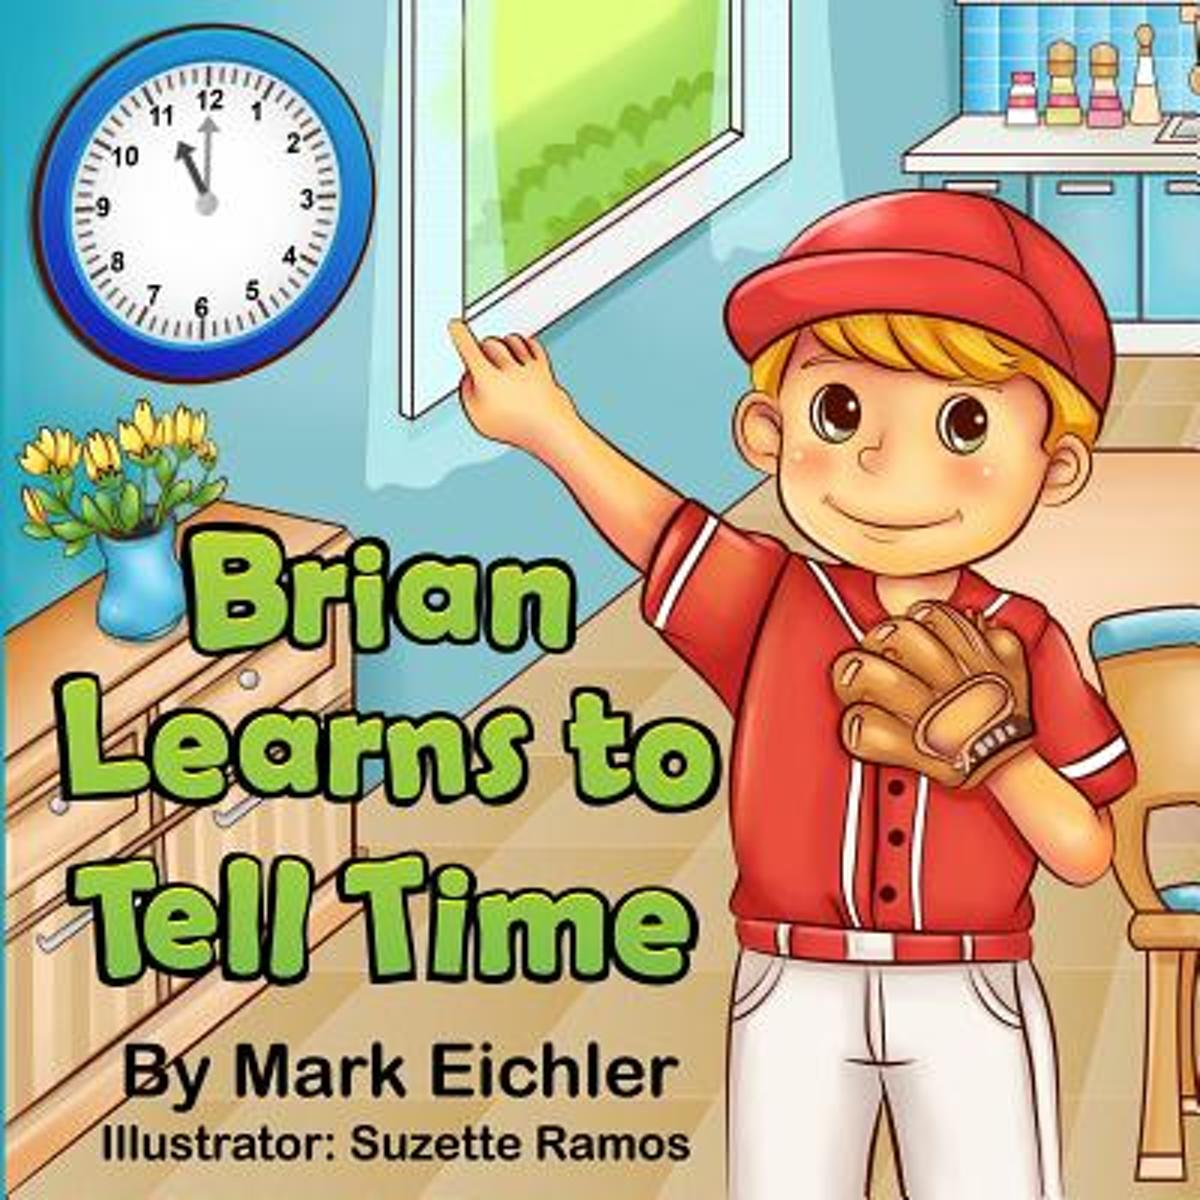 Brian Learns to Tell Time